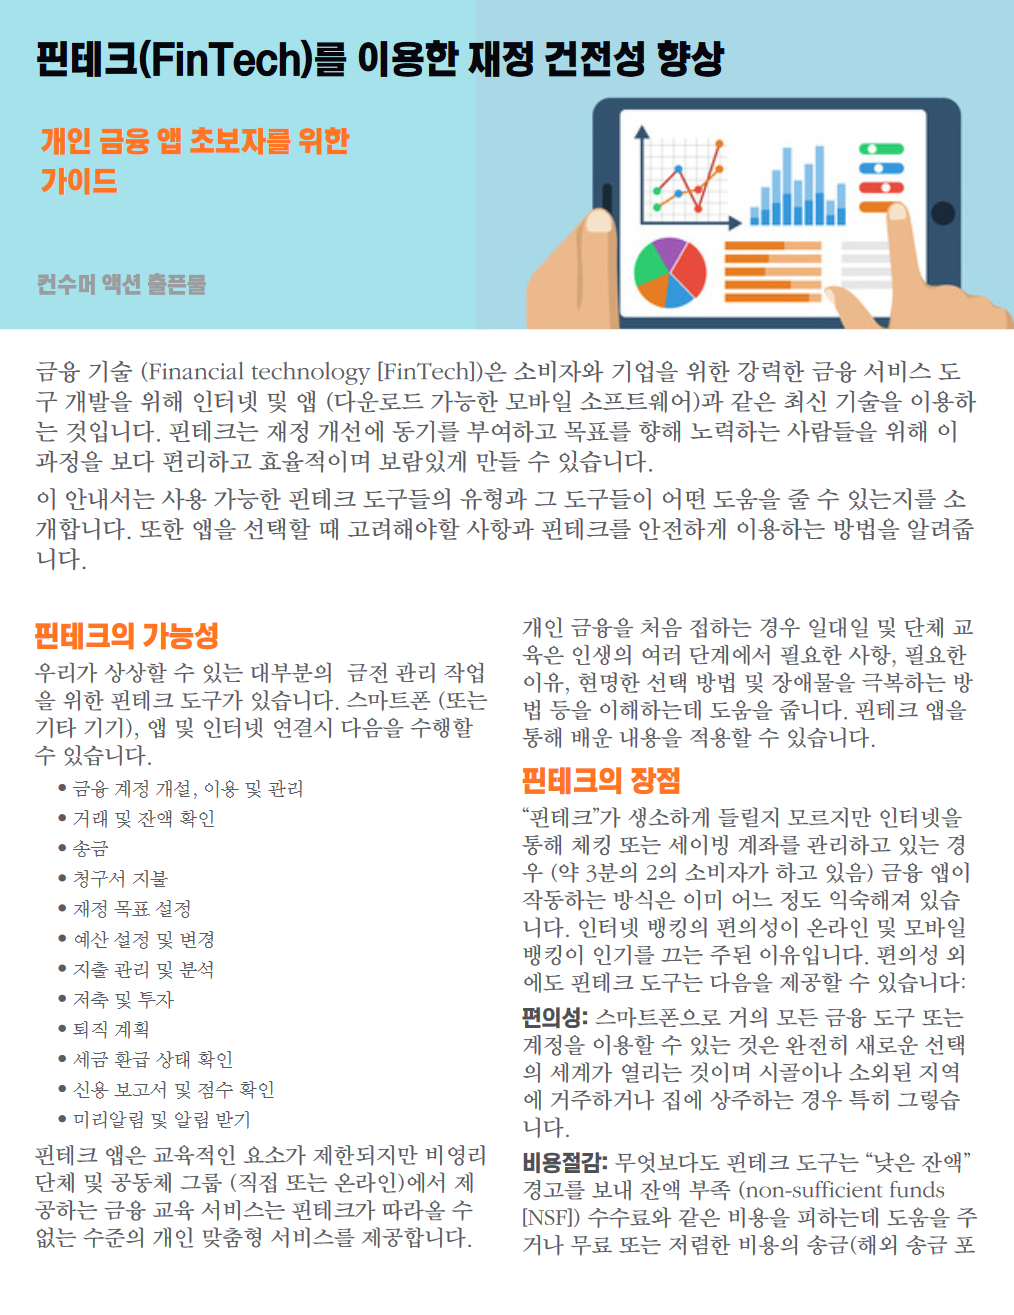 Improving your financial health with FinTech (Korean)